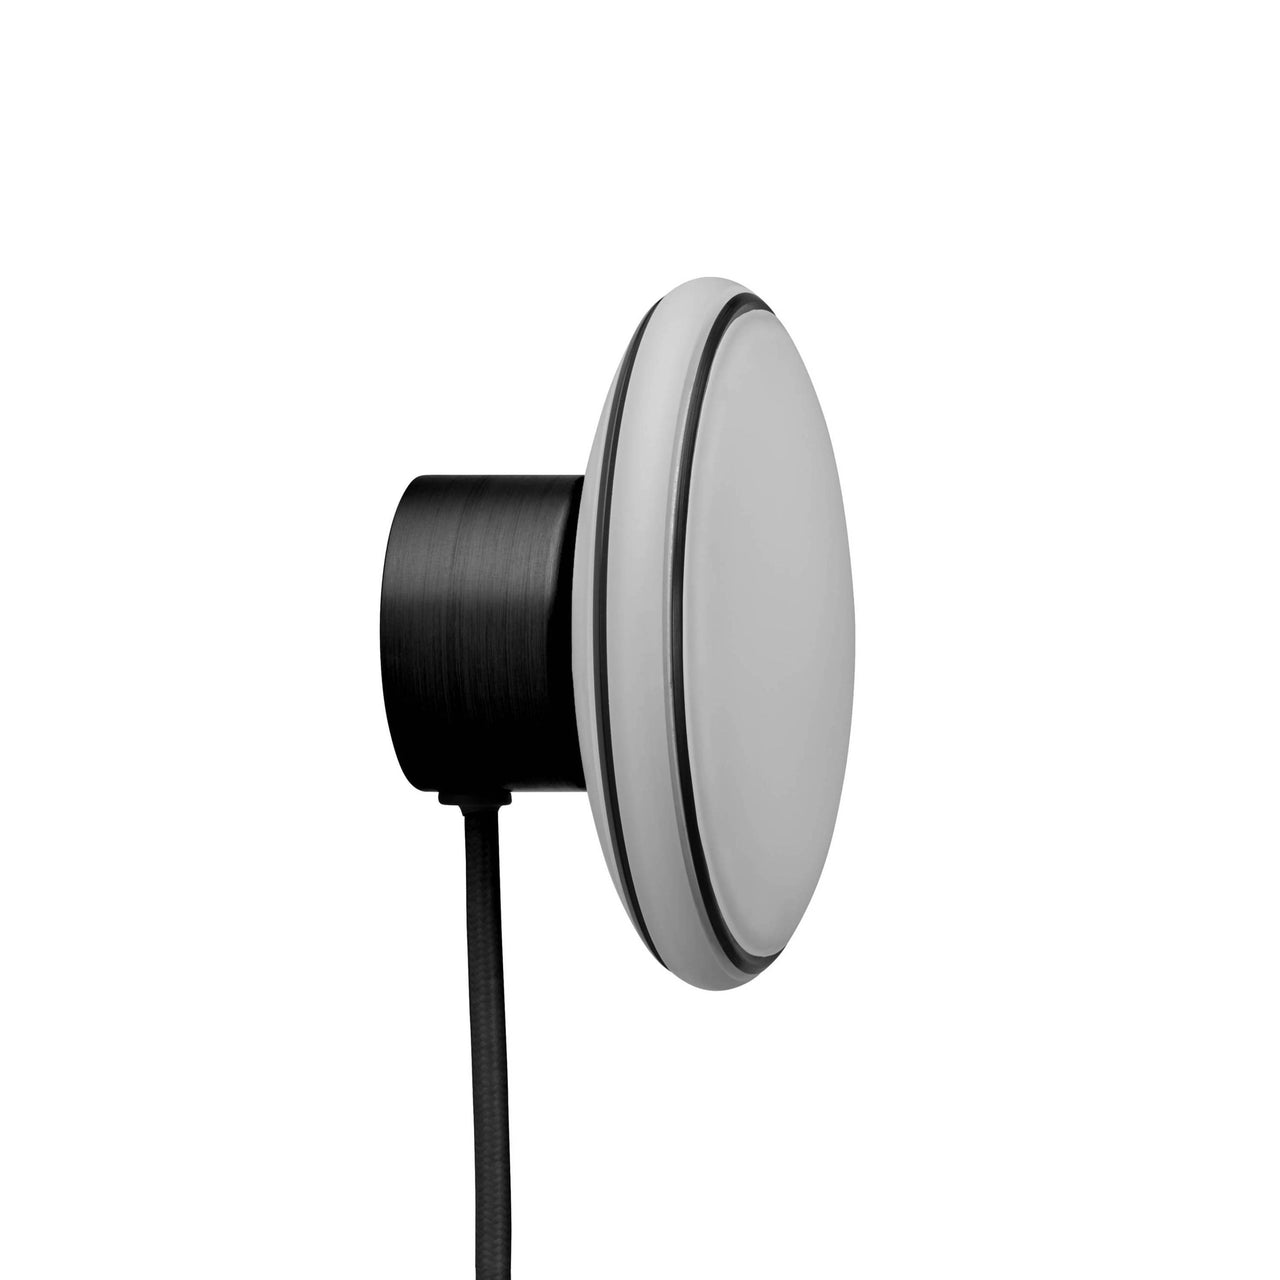 ØS1 Wall Lamp: Black + Black + Without Node